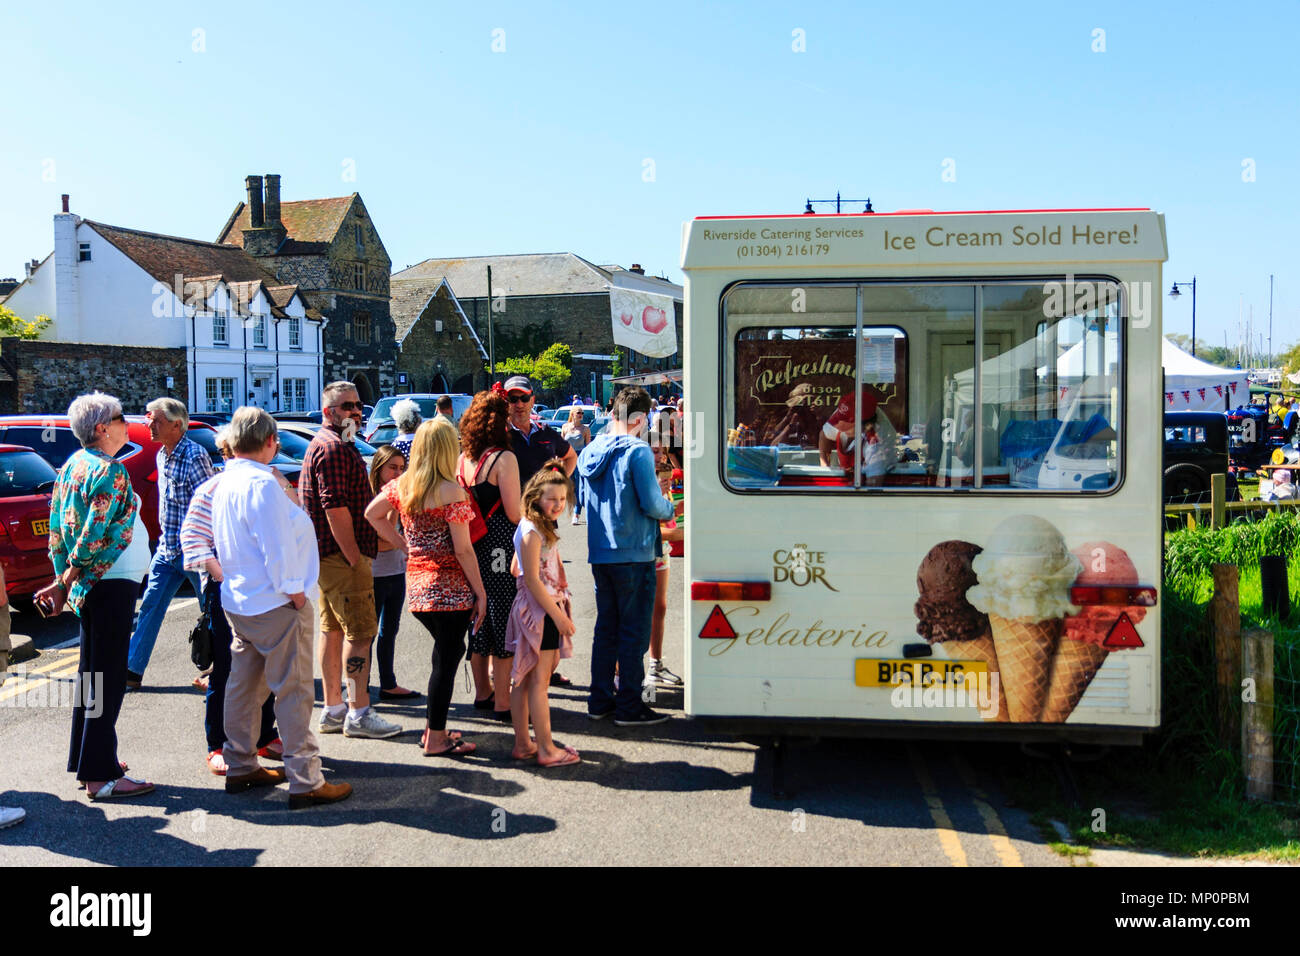 England. People queuing waiting to buy ice creams from ice cream van on a hot day. Sunshine, blue sky. - Stock Image